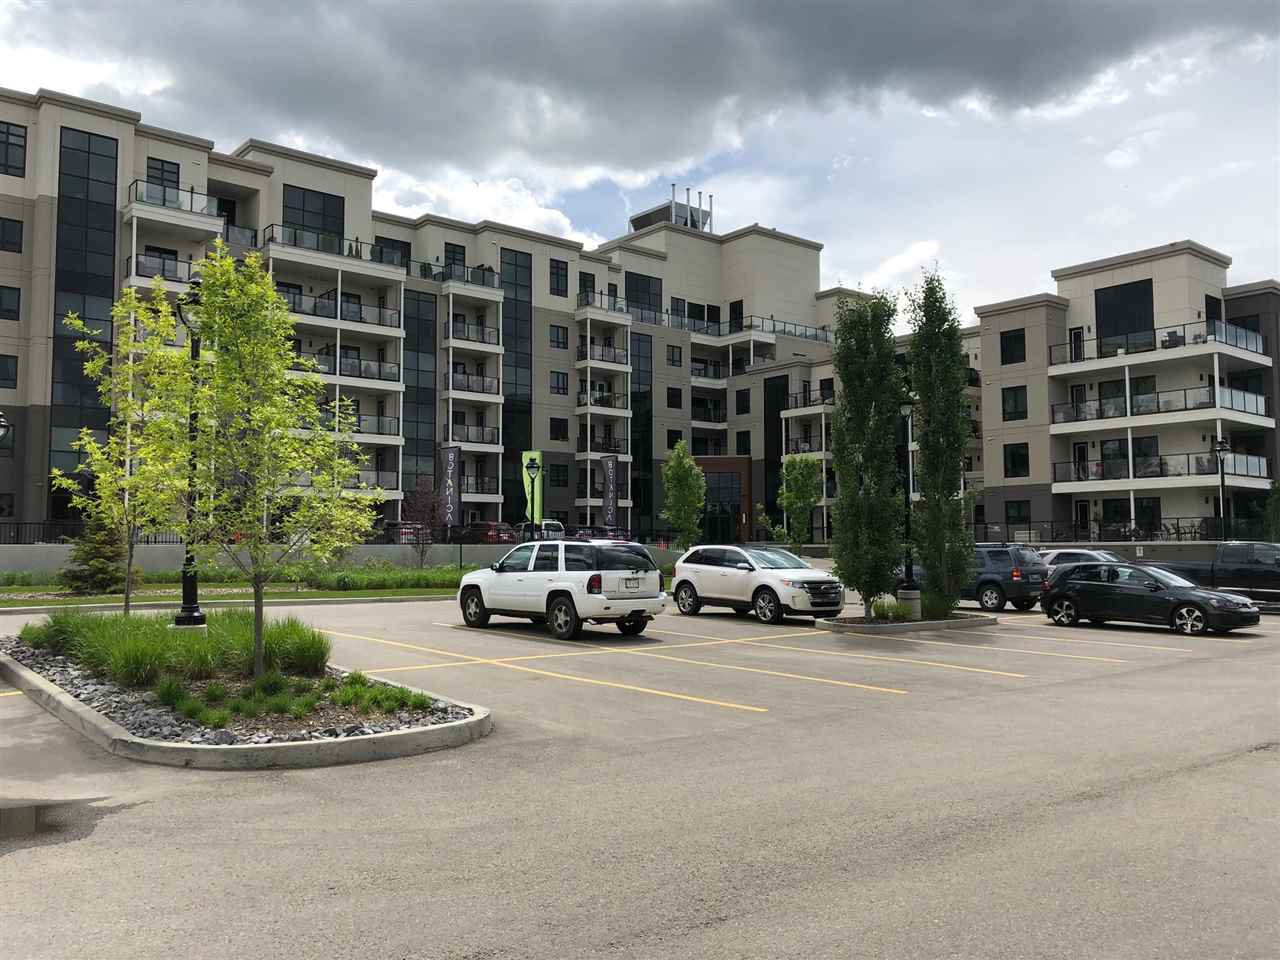 Main Photo: 917 200 BELLEROSE Drive: St. Albert Condo for sale : MLS®# E4160557